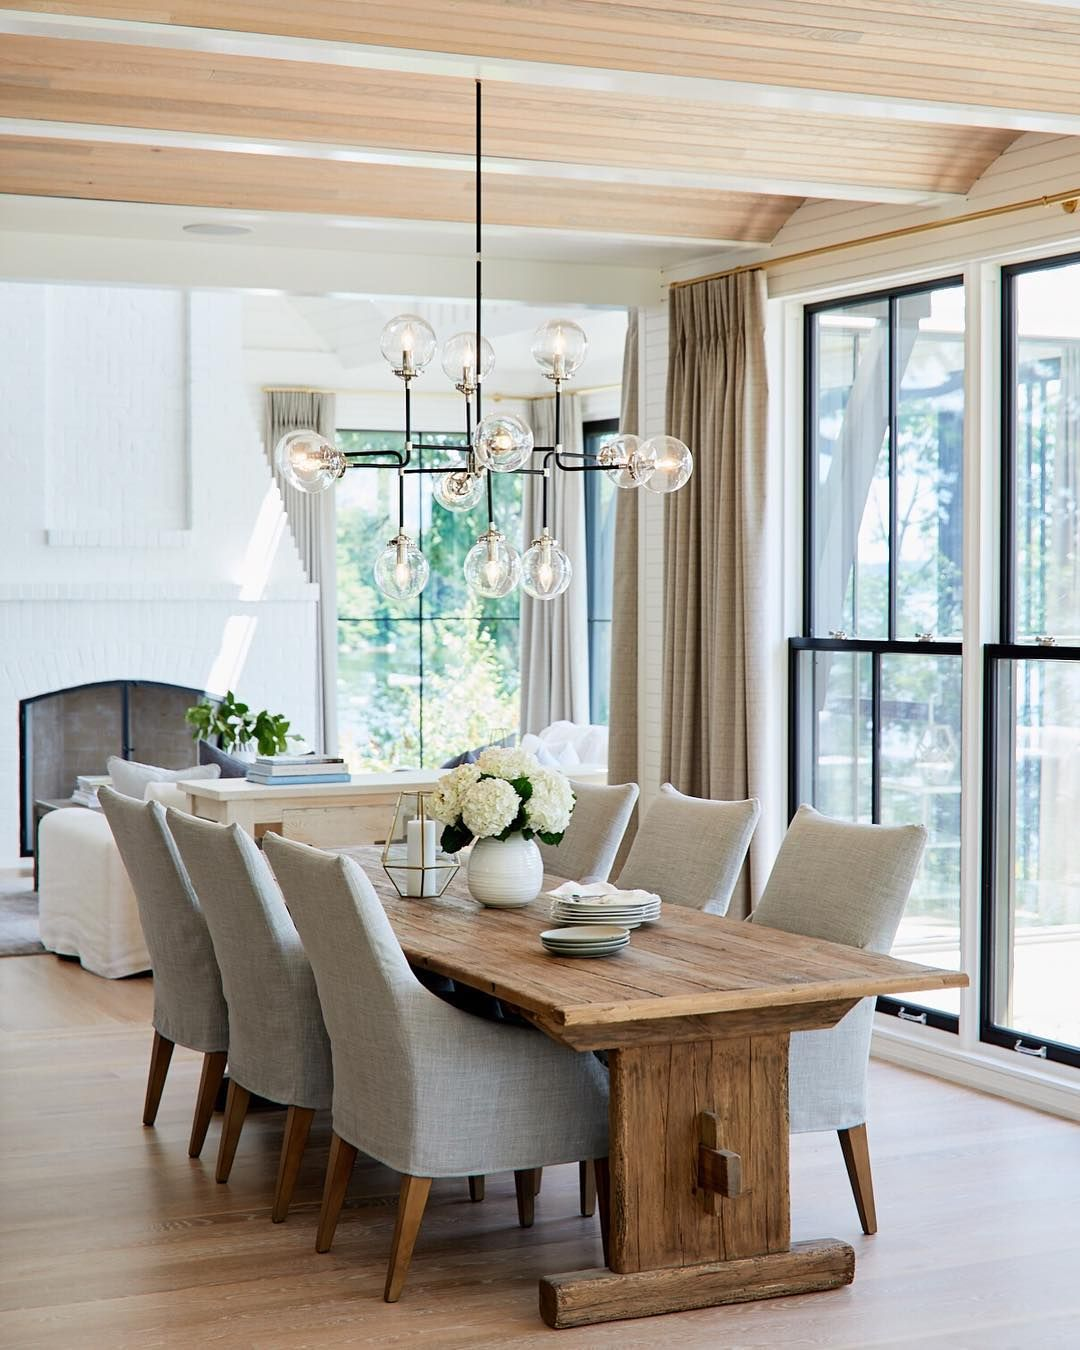 Dining Room With Light Wood Table And Fabric Chairs Modern